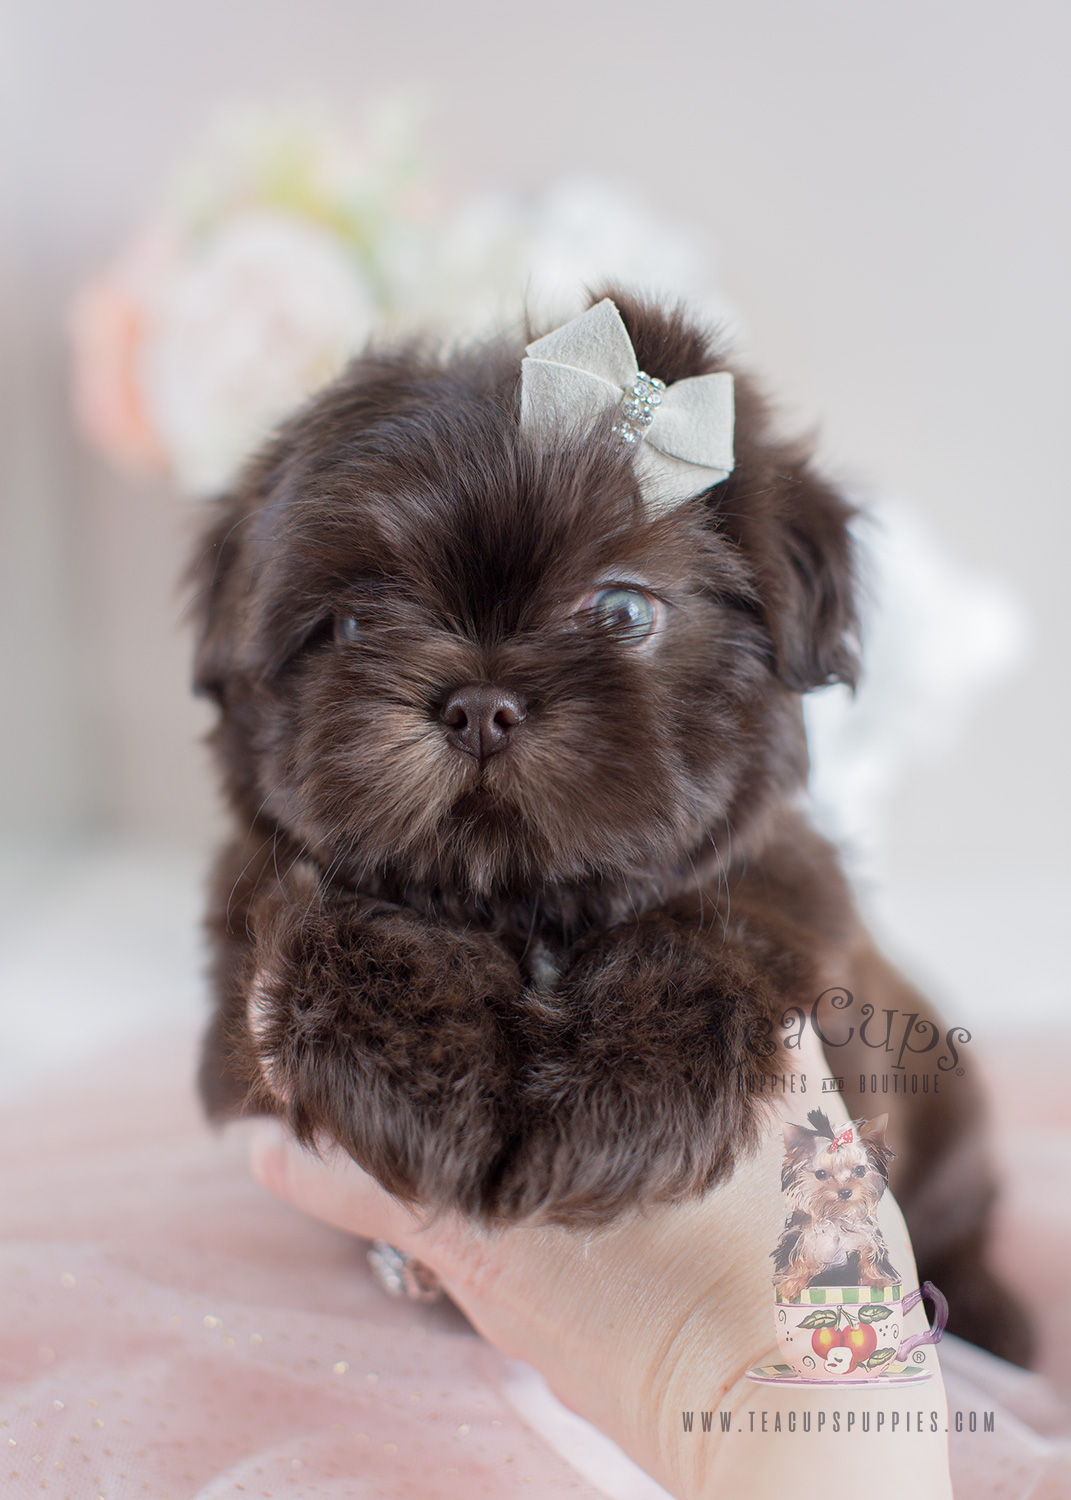 Chocolate Shih Tzu Puppies For Sale South Florida